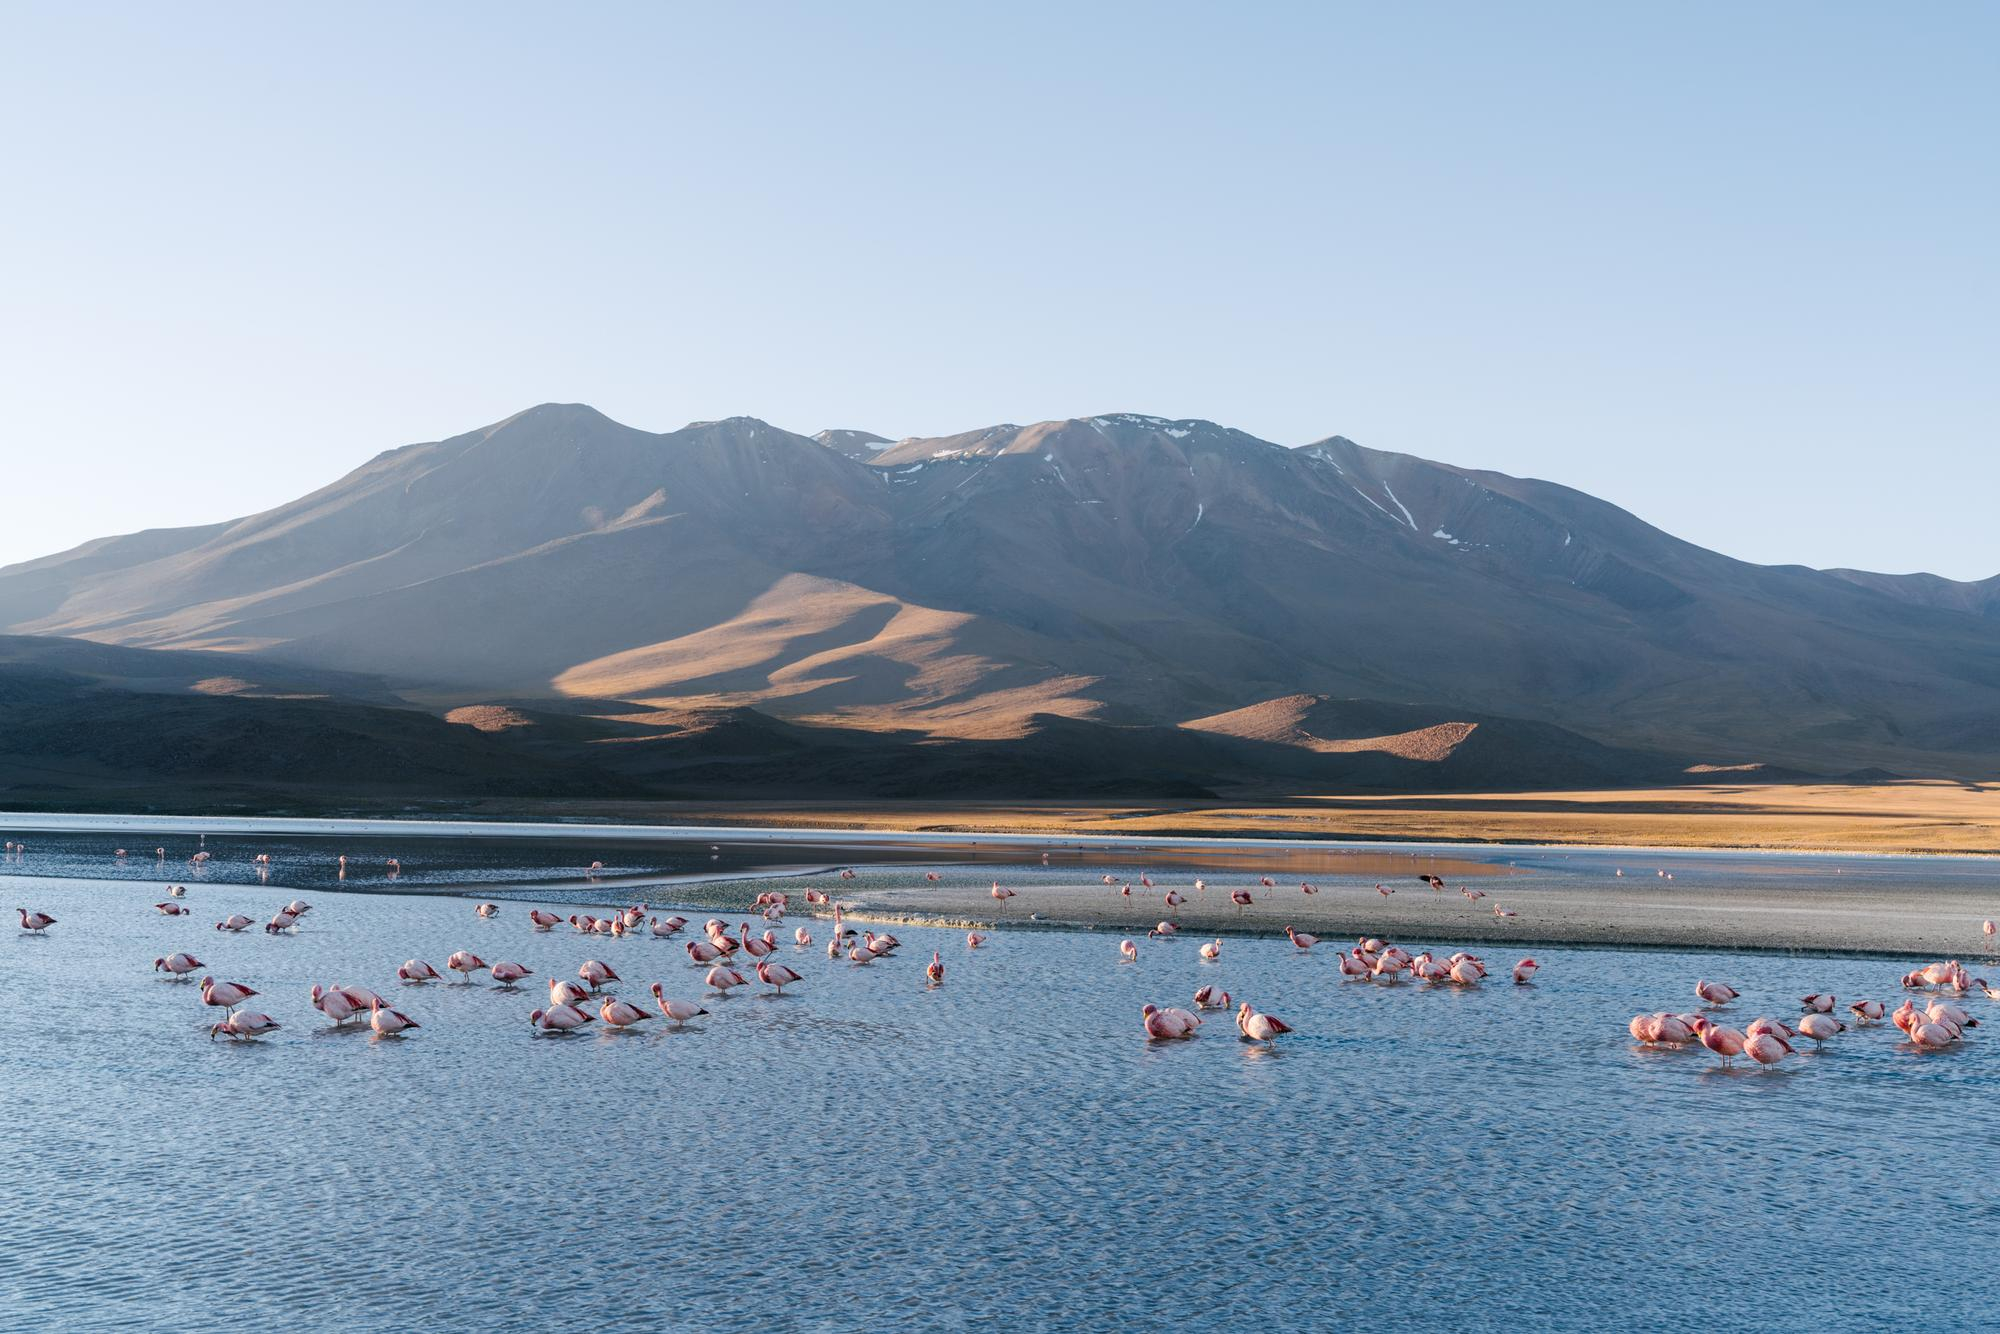 ...with flamingo-filled lagunas at every turn...